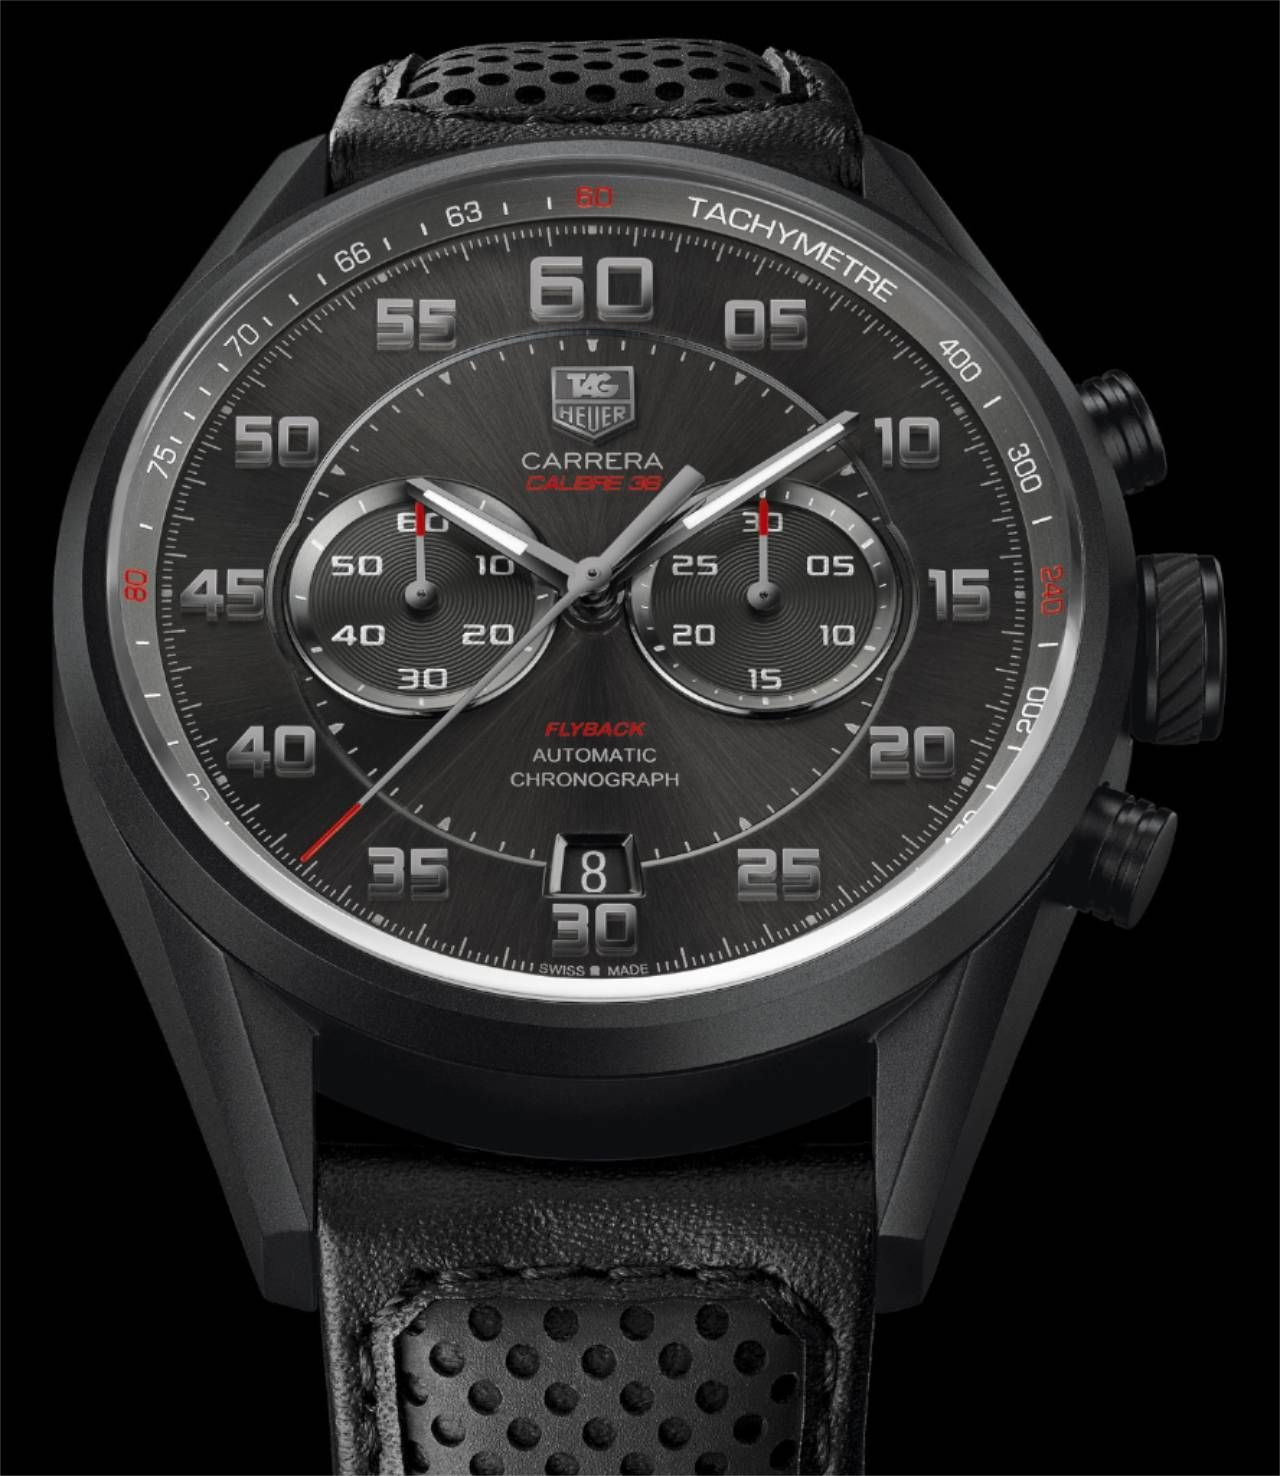 Buy your special tag heuer carrera automatic chronograph calibre 36 flyback at uhrinstinkt!